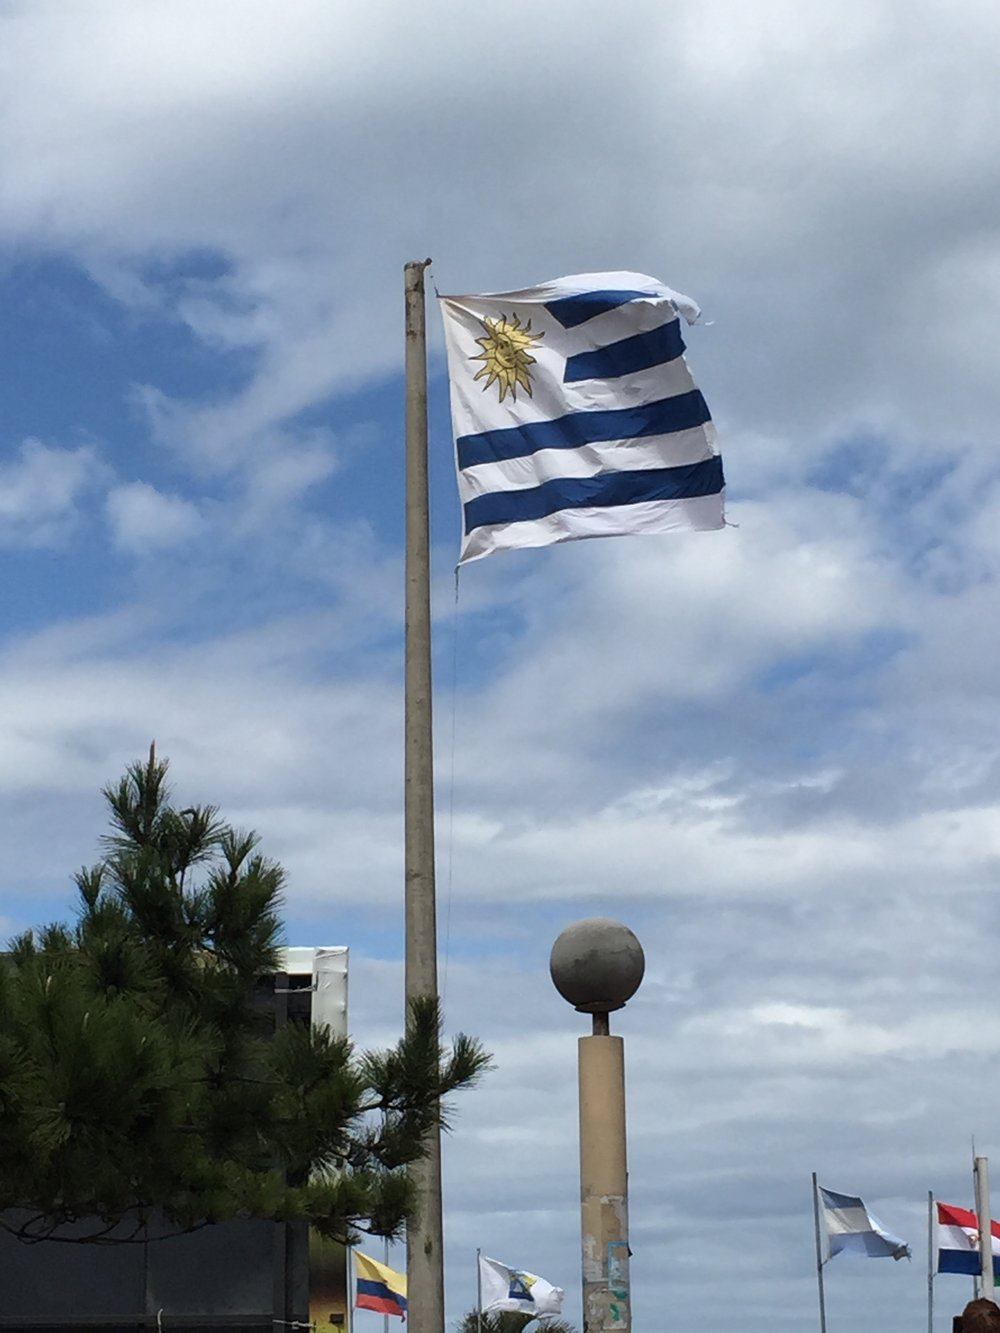 stock-photo-la-bandera-uruguayo-104136065.jpg